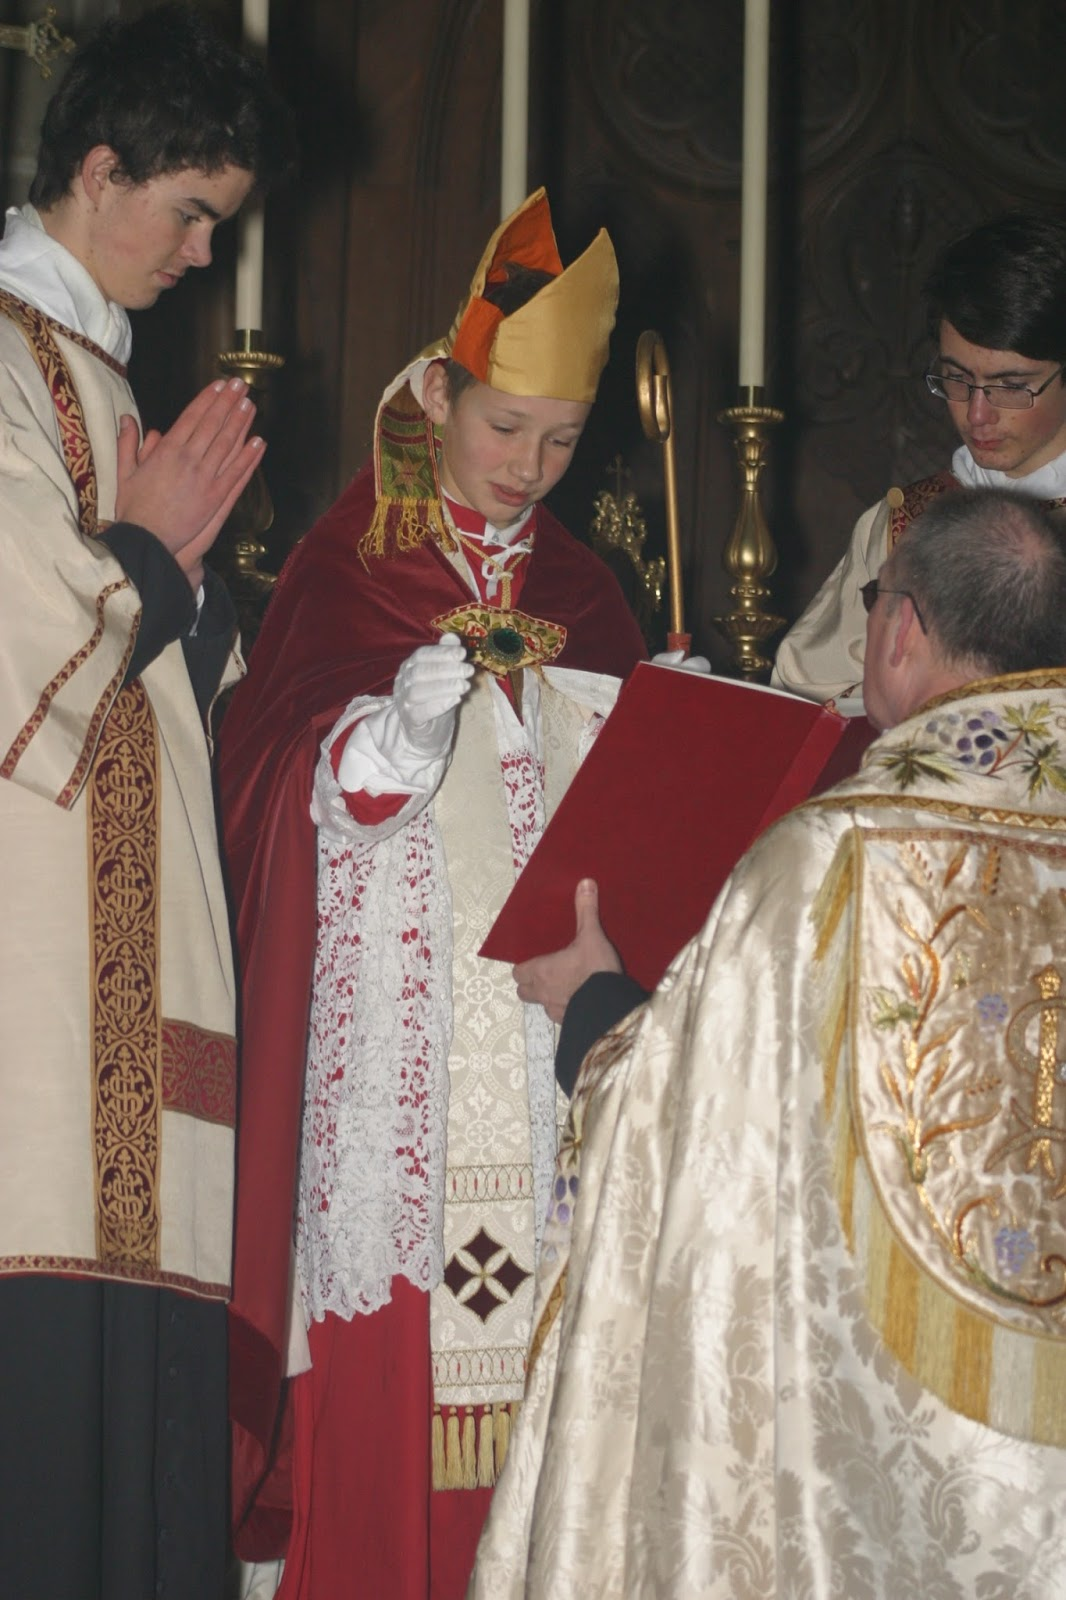 Colleges In New England >> New Liturgical Movement: A Boy-Bishop for St Nicholas' Day